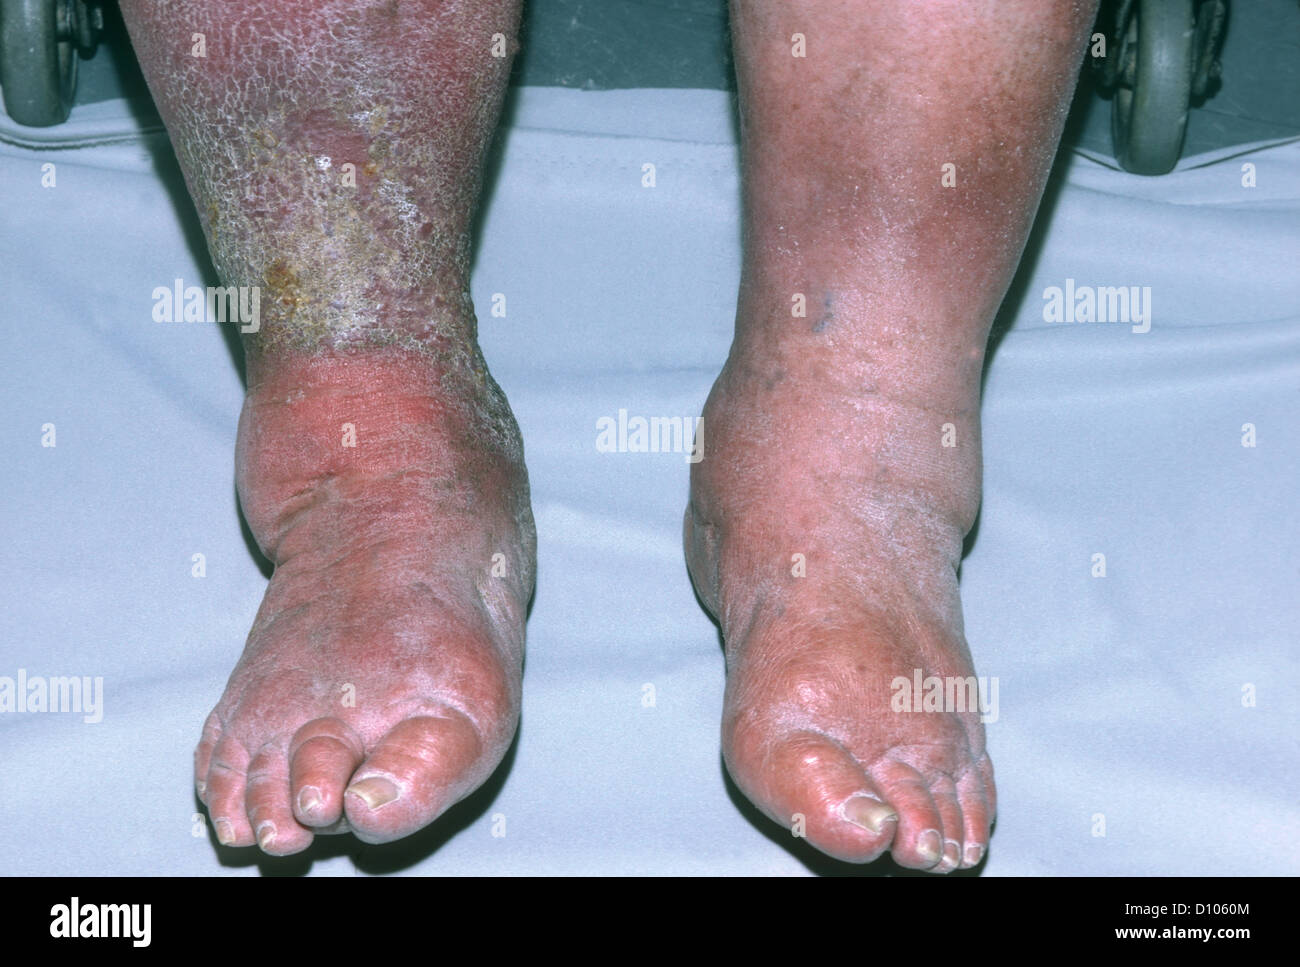 swollen ankles stock photos & swollen ankles stock images - alamy, Skeleton